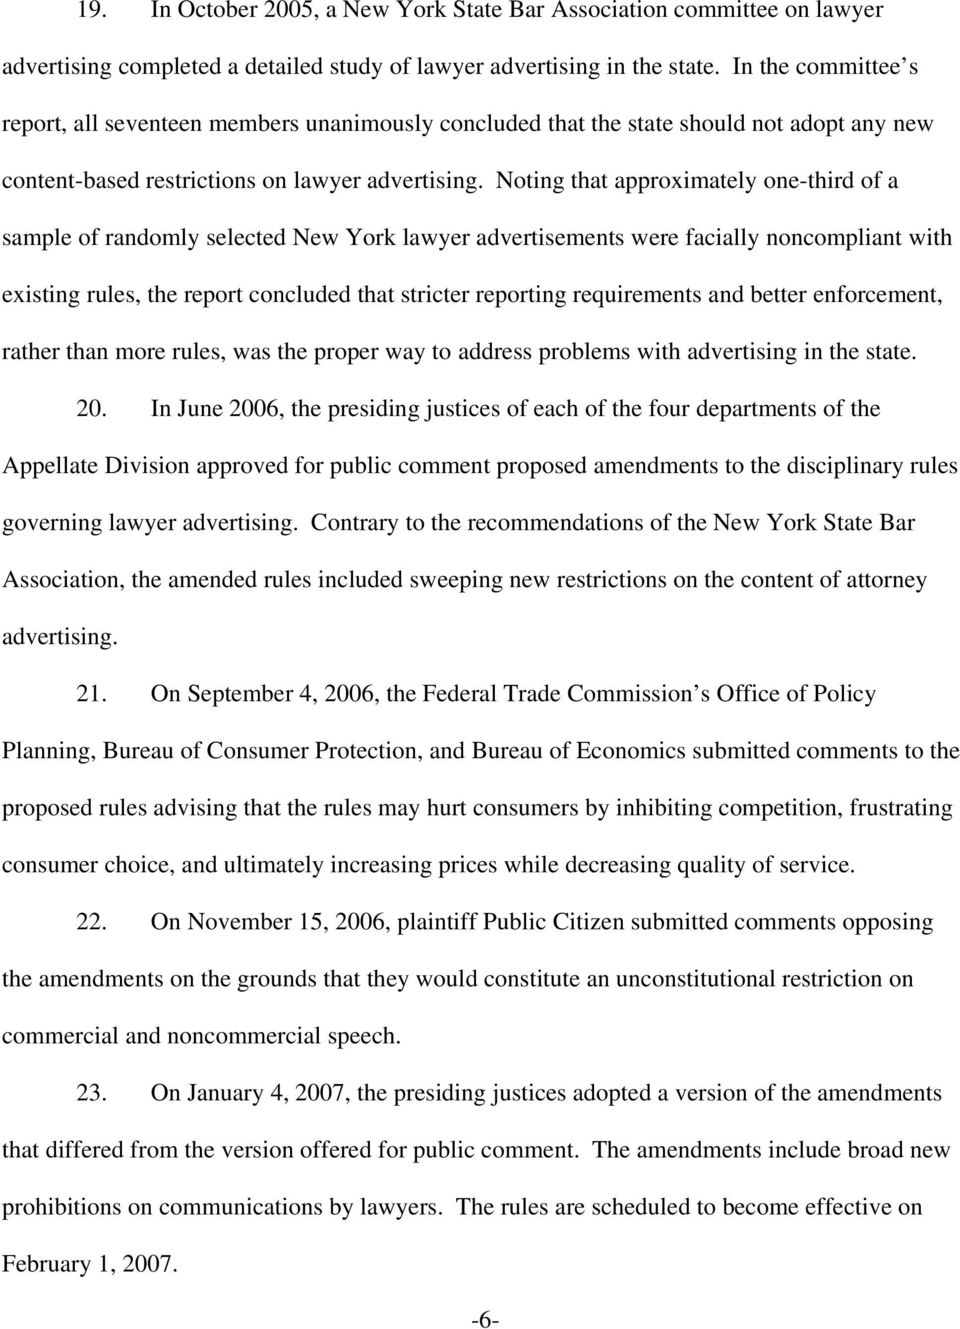 Noting that approximately one-third of a sample of randomly selected New York lawyer advertisements were facially noncompliant with existing rules, the report concluded that stricter reporting